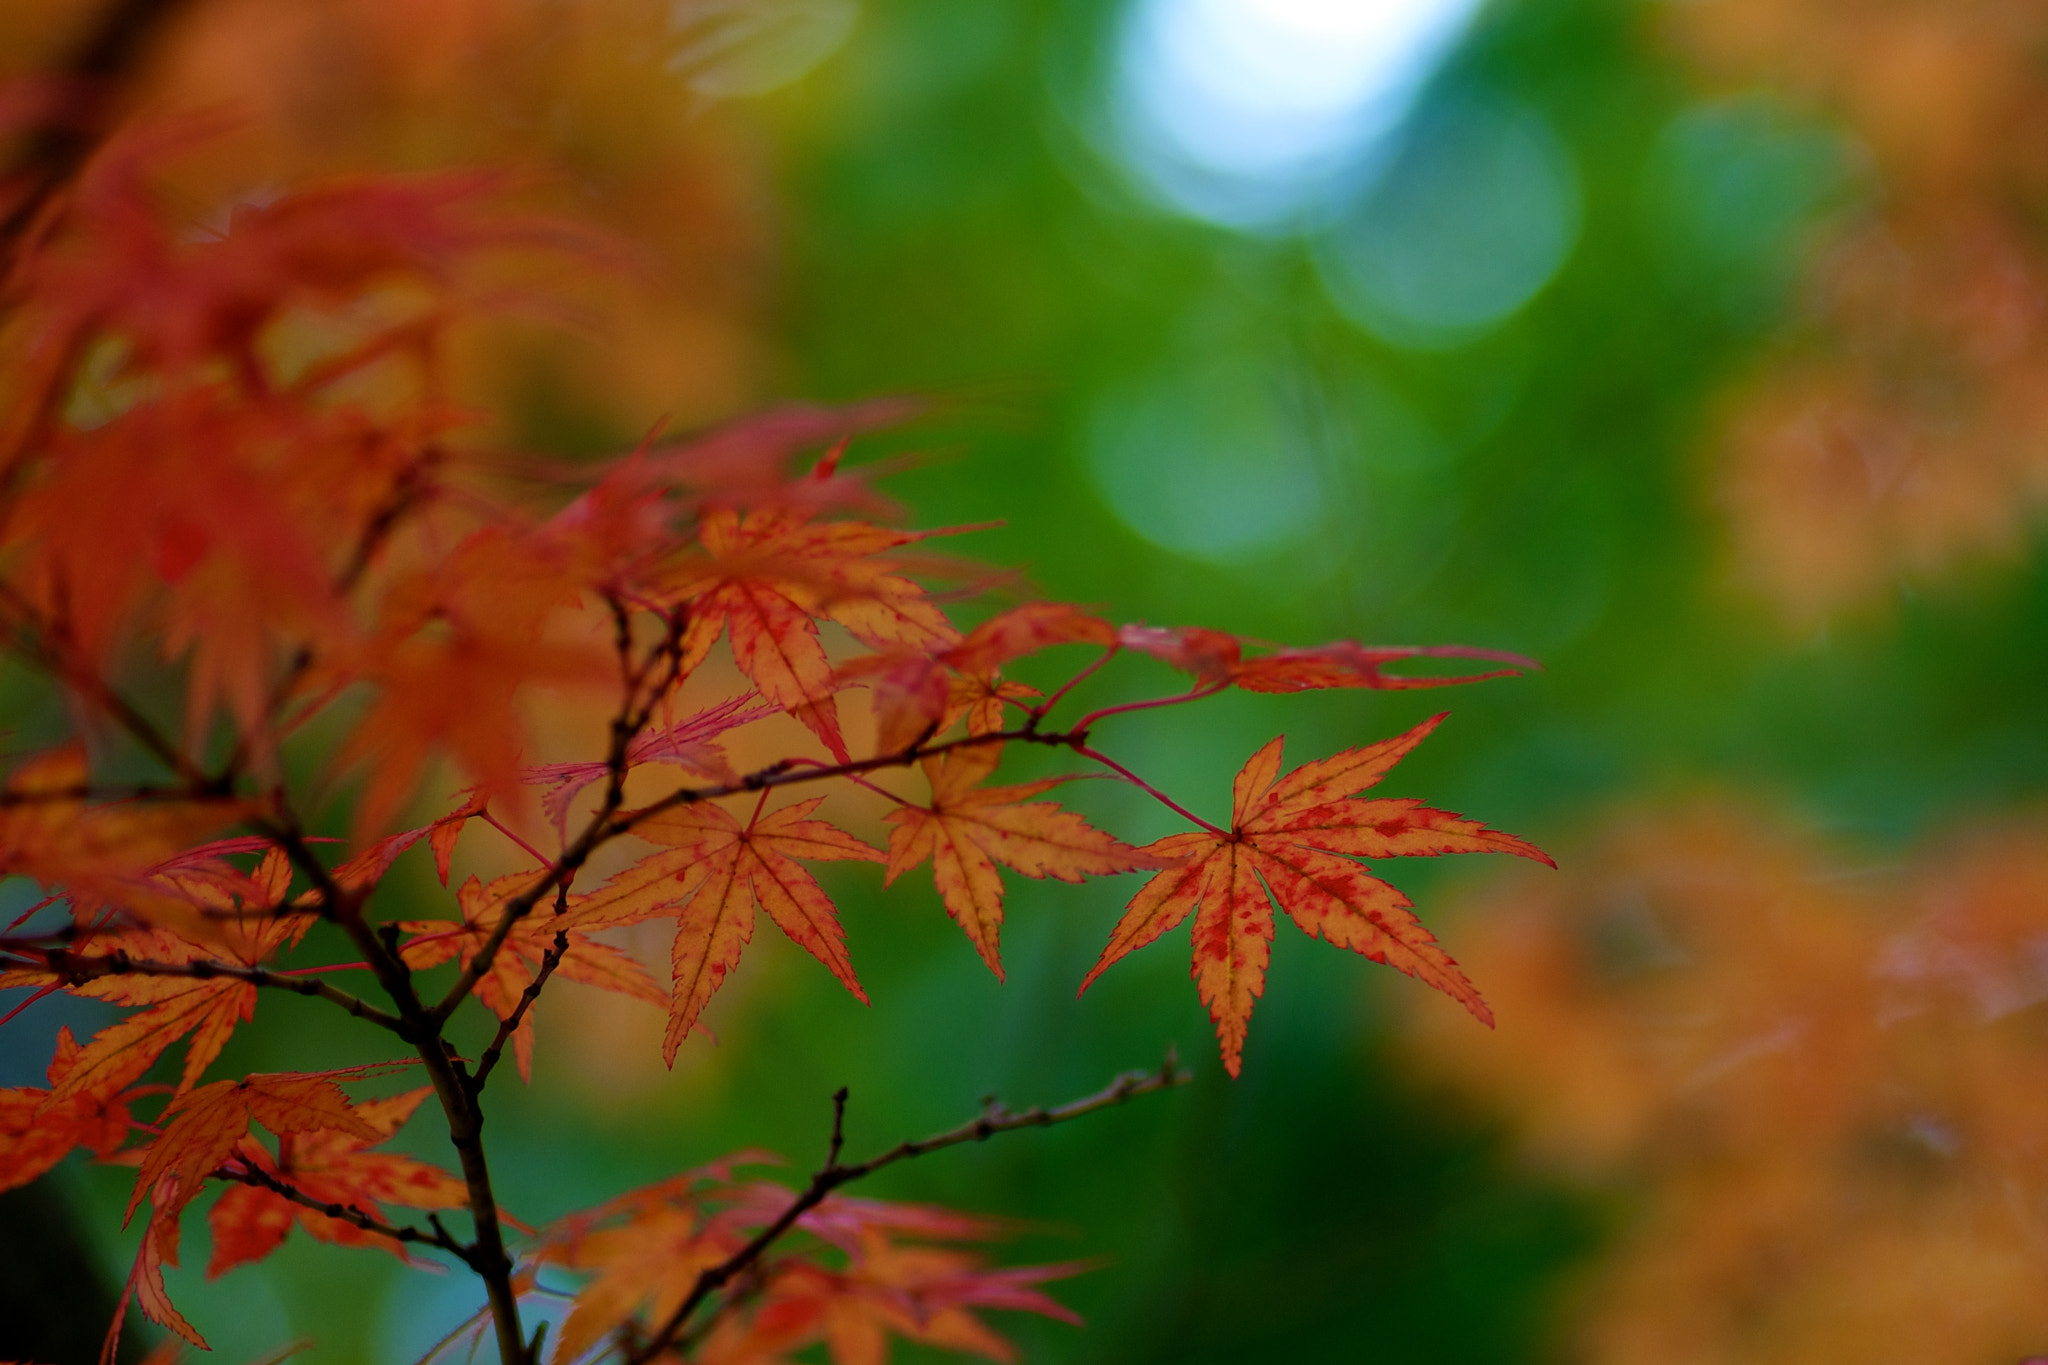 Photograph Autumn Leaves by Mitch Fujiwara on 500px